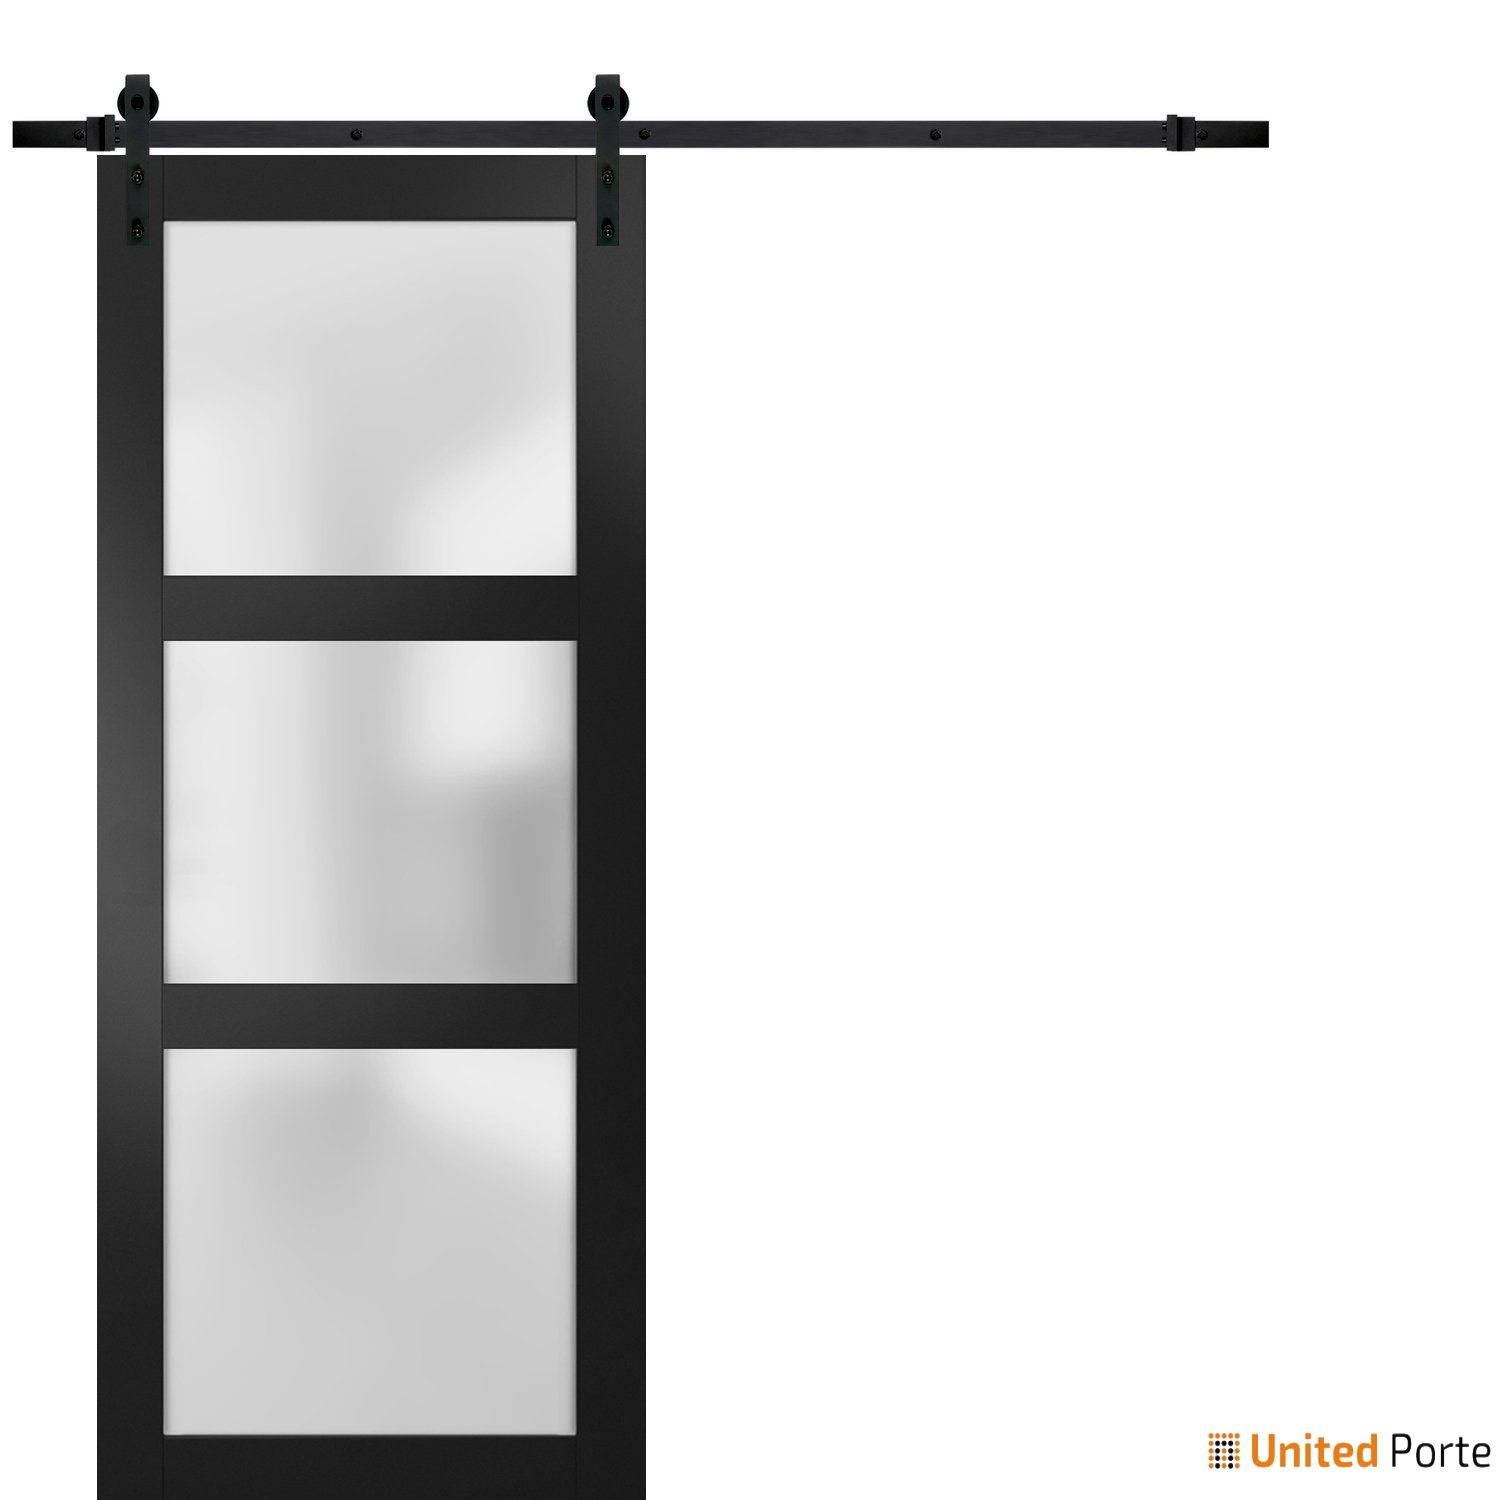 Lucia 2552 Matte Black Sturdy Barn Door Frosted Glass with Black Hardware   Solid Panel Interior Barn Doors